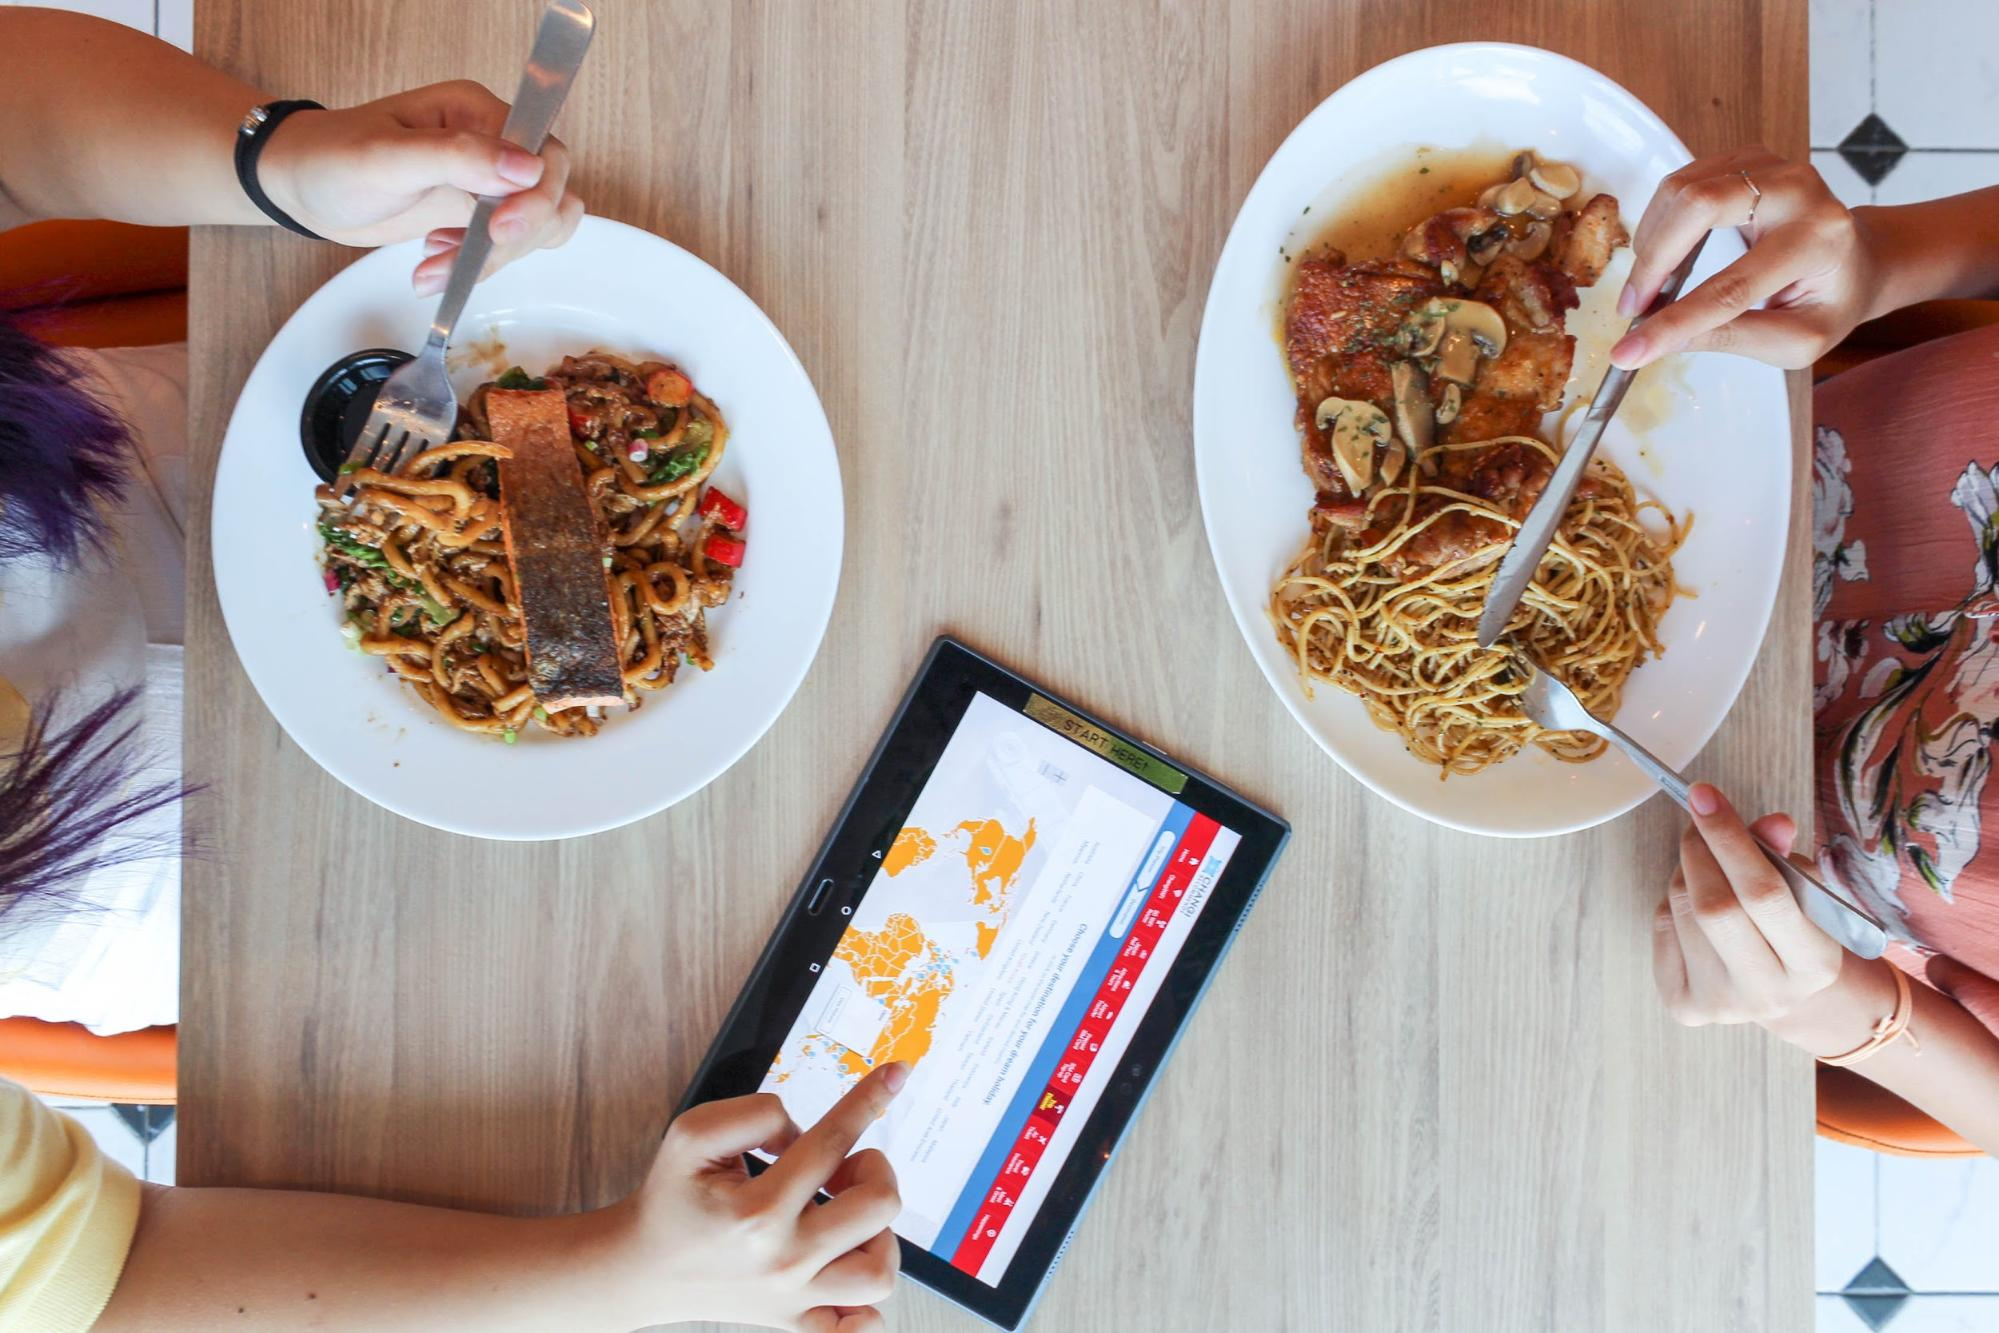 Eat and plan trips at HyfeCafe using the Trip Planner app